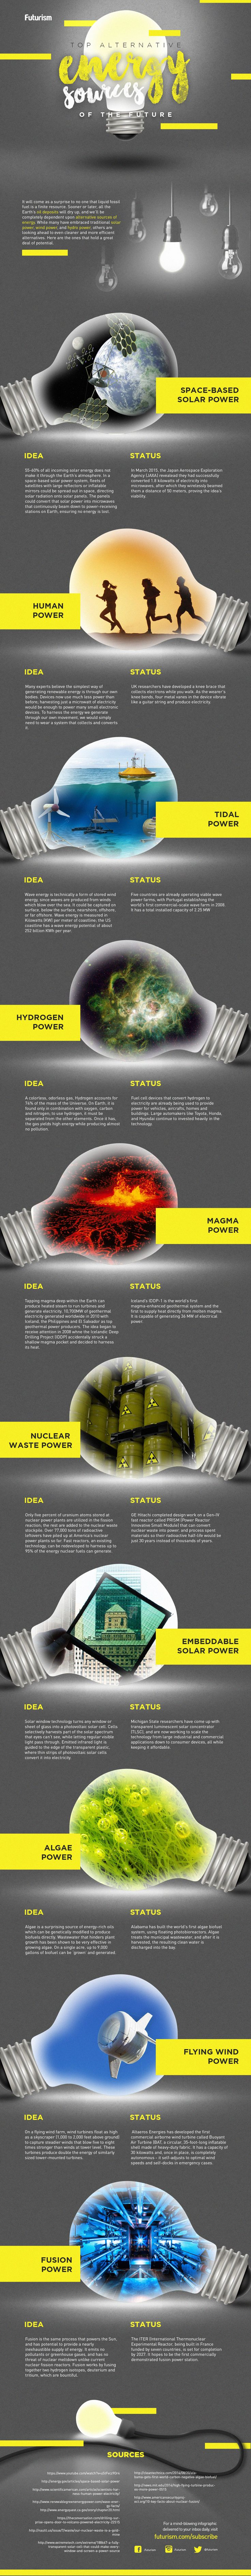 It could provide clean, cheap, inexhaustible power to the world. So why haven't we figured it out yet?